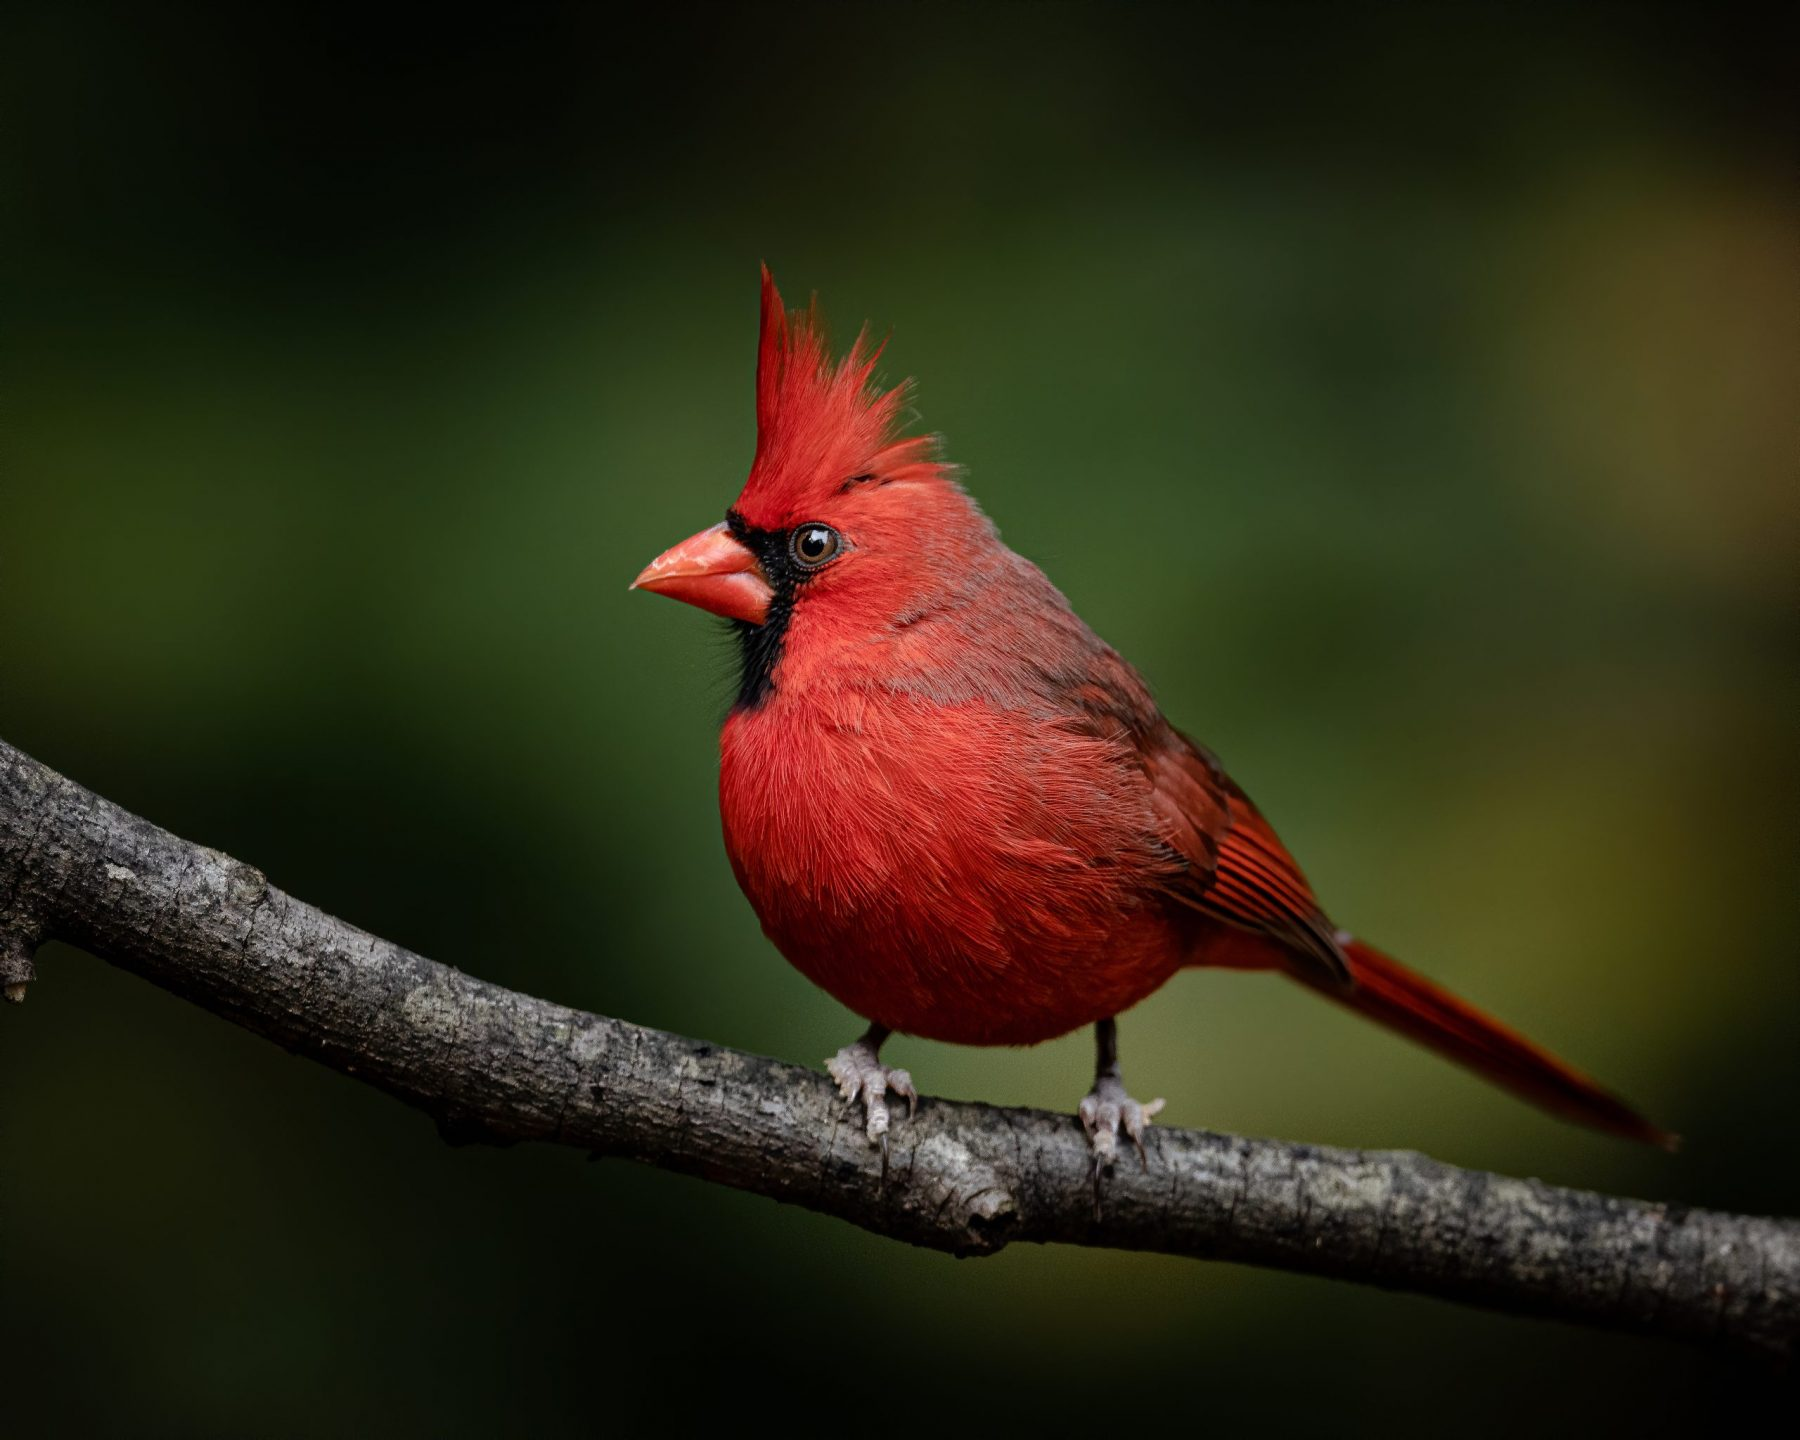 Male Northern Cardinal by Zach Kohlman